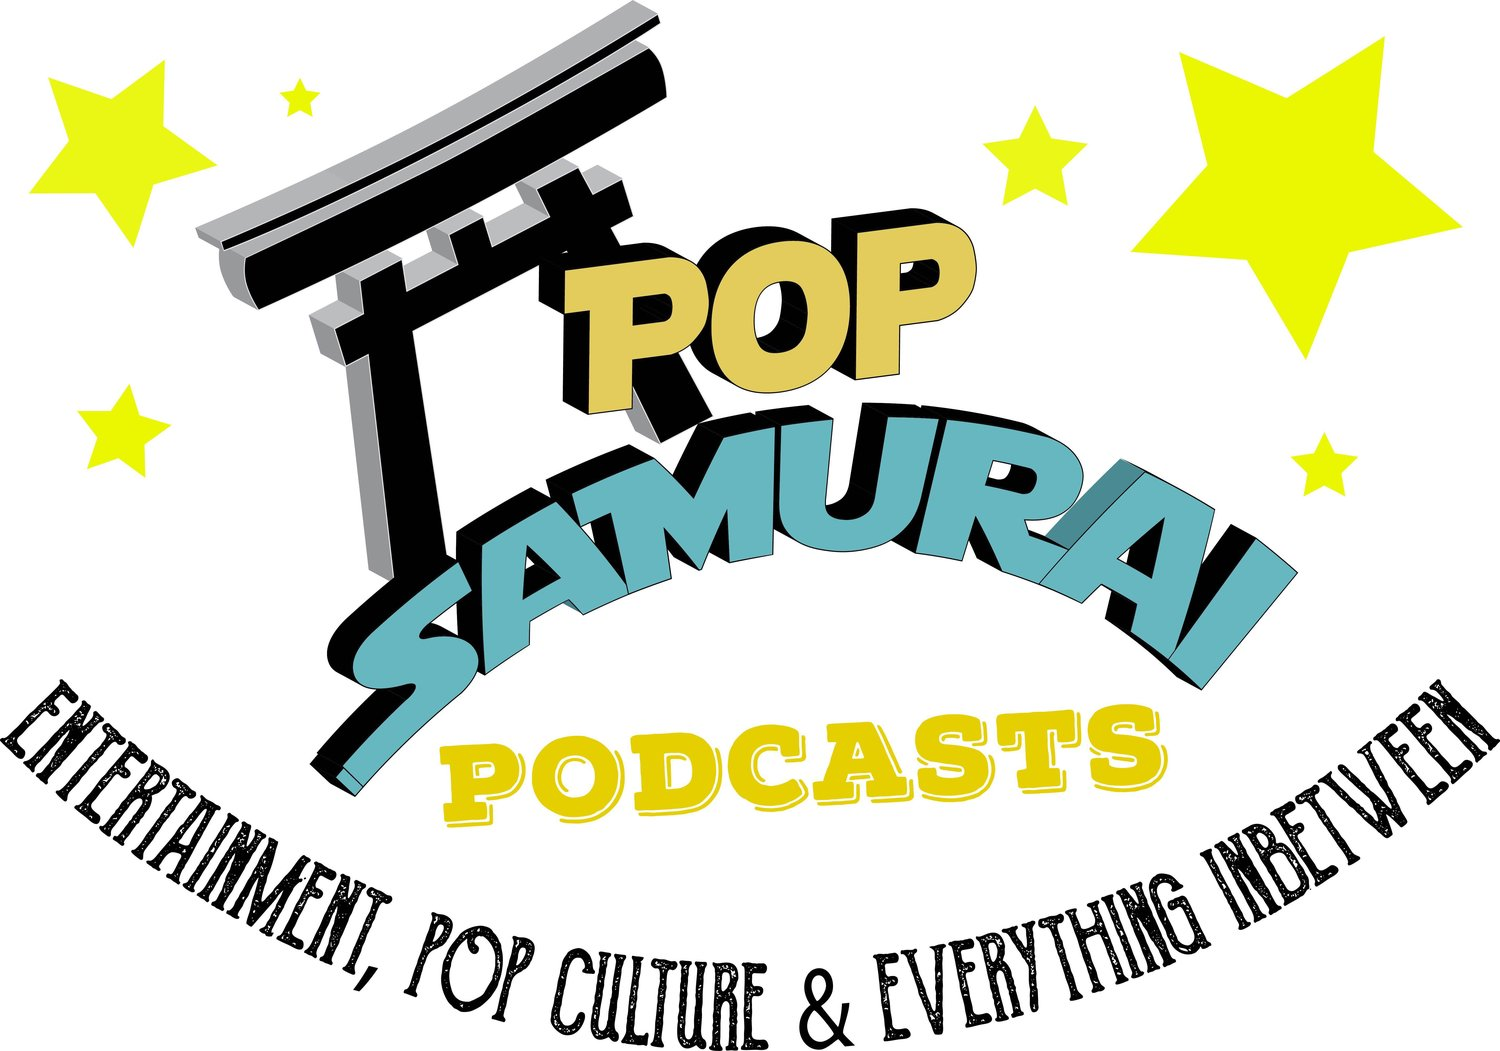 POP SAMURAI: Dojo Podcasts